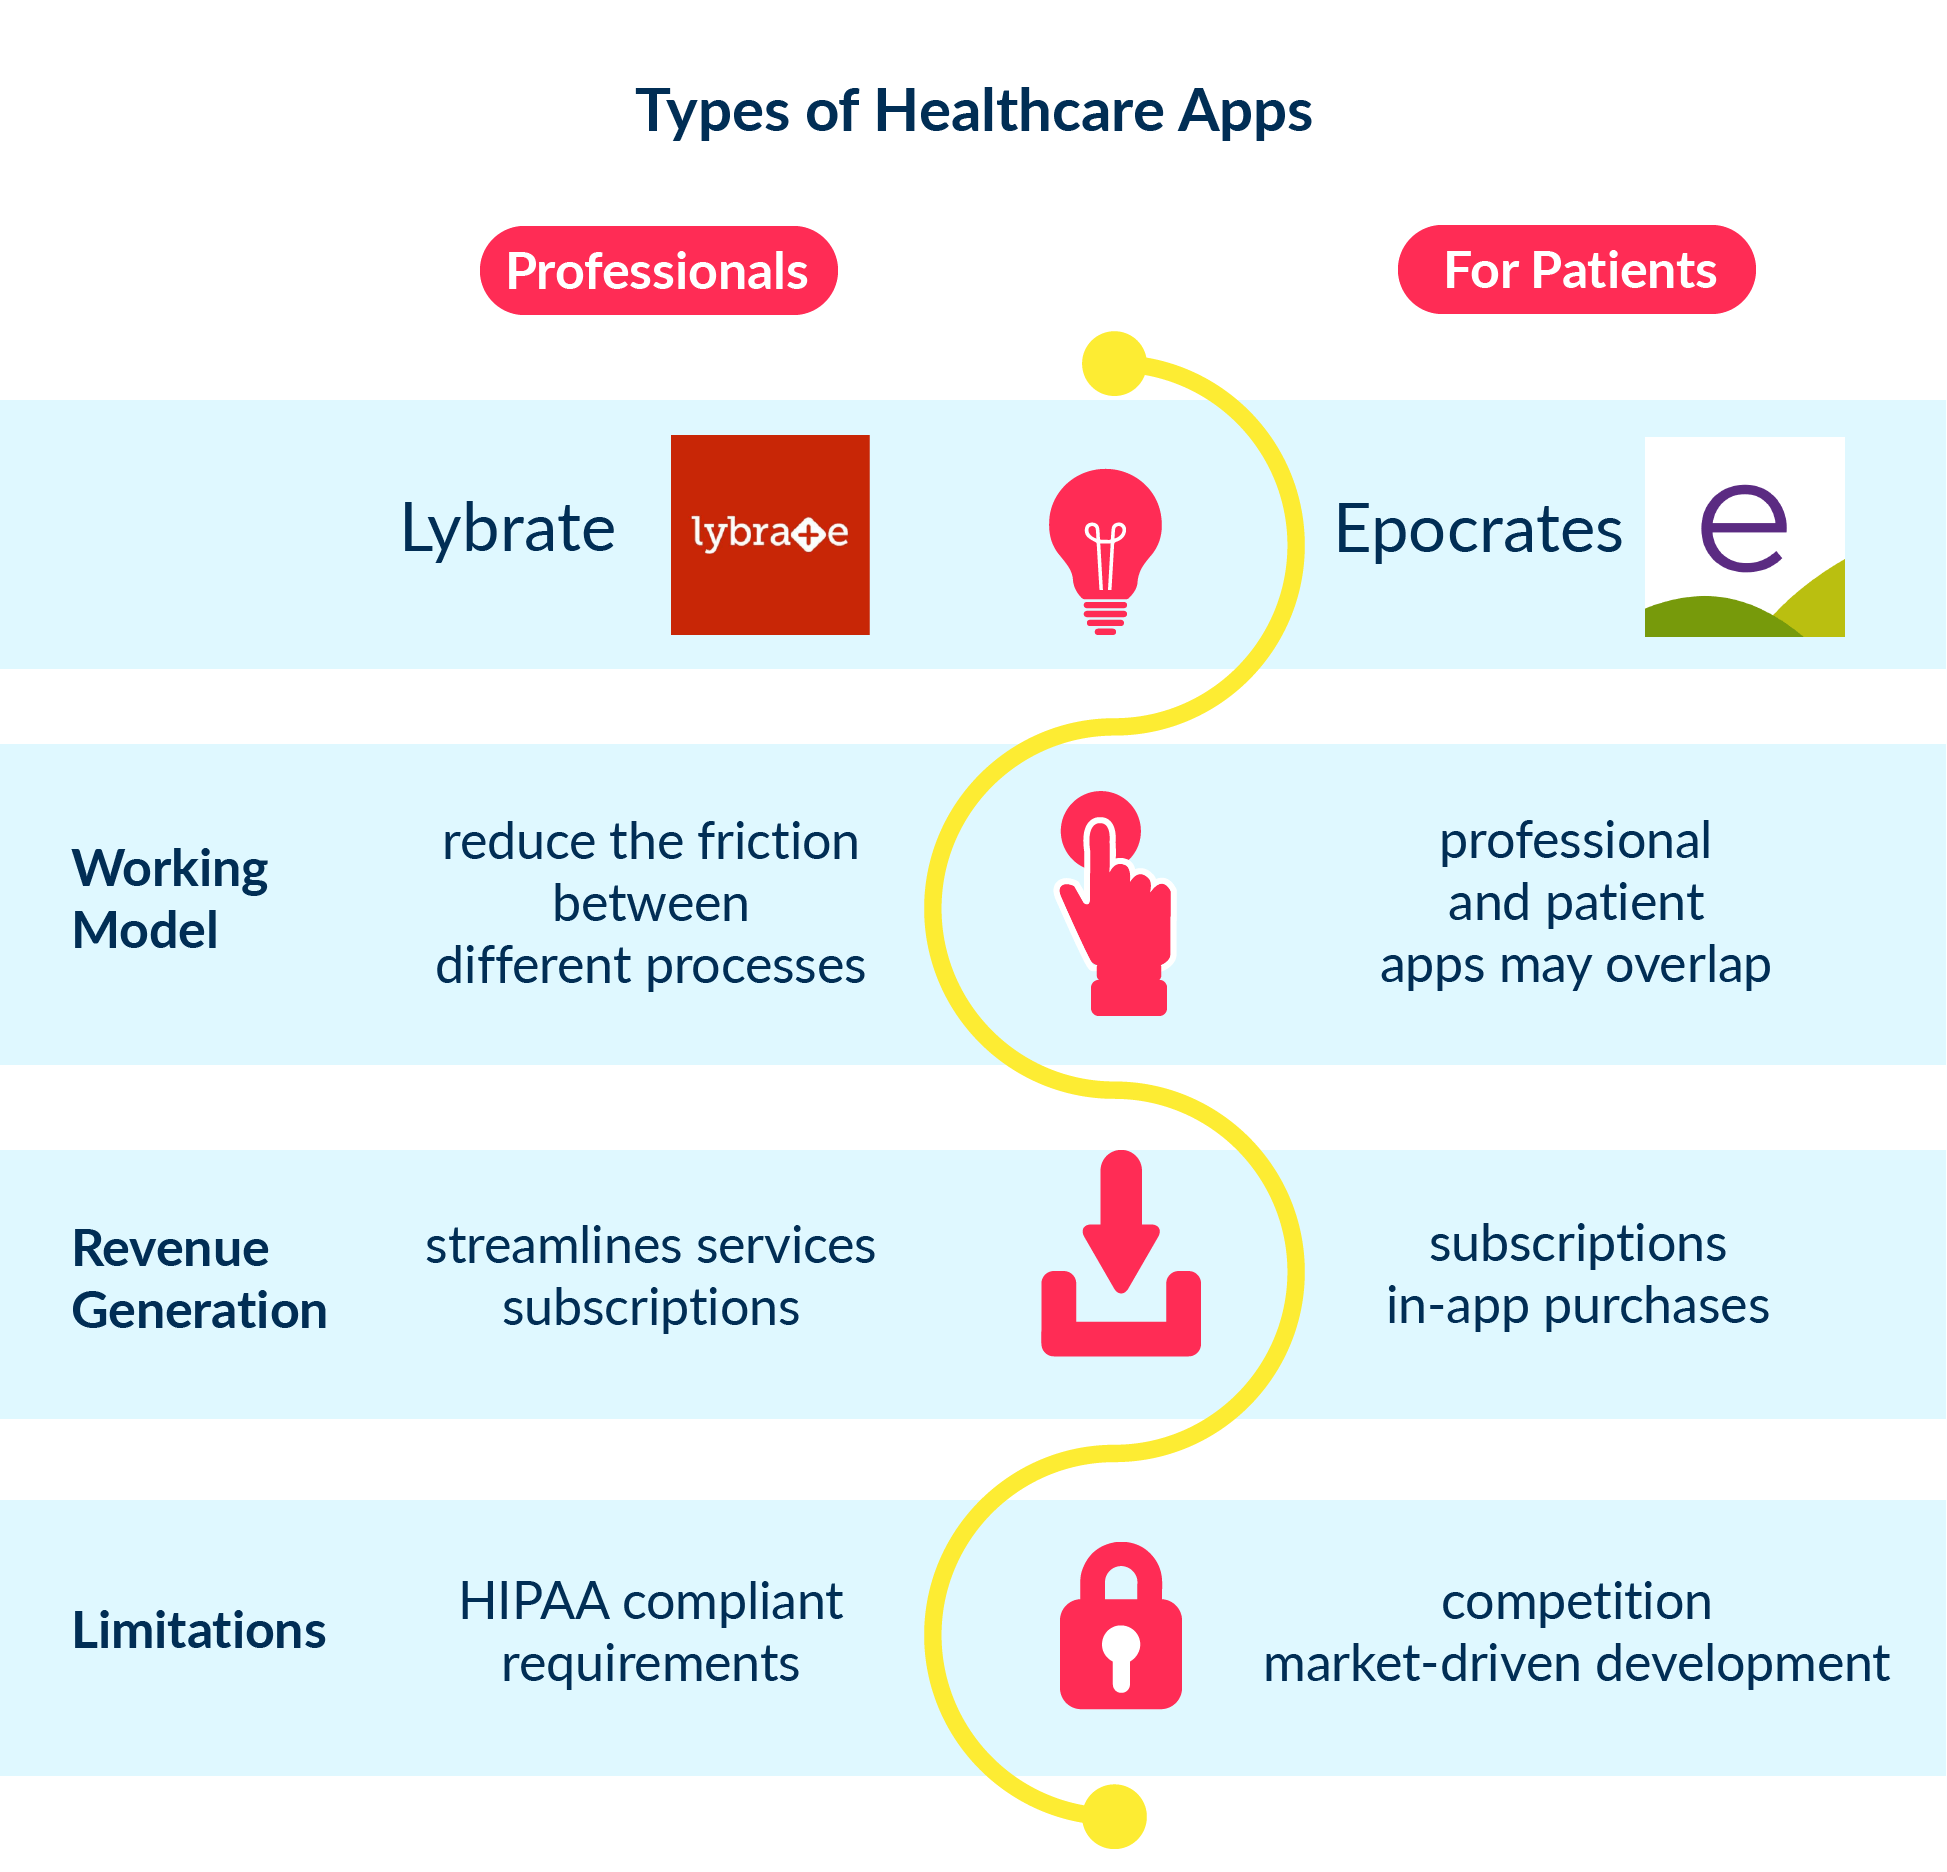 This image refers to two types of medical or healthcare applications, for professionals and patients, that can be developed.